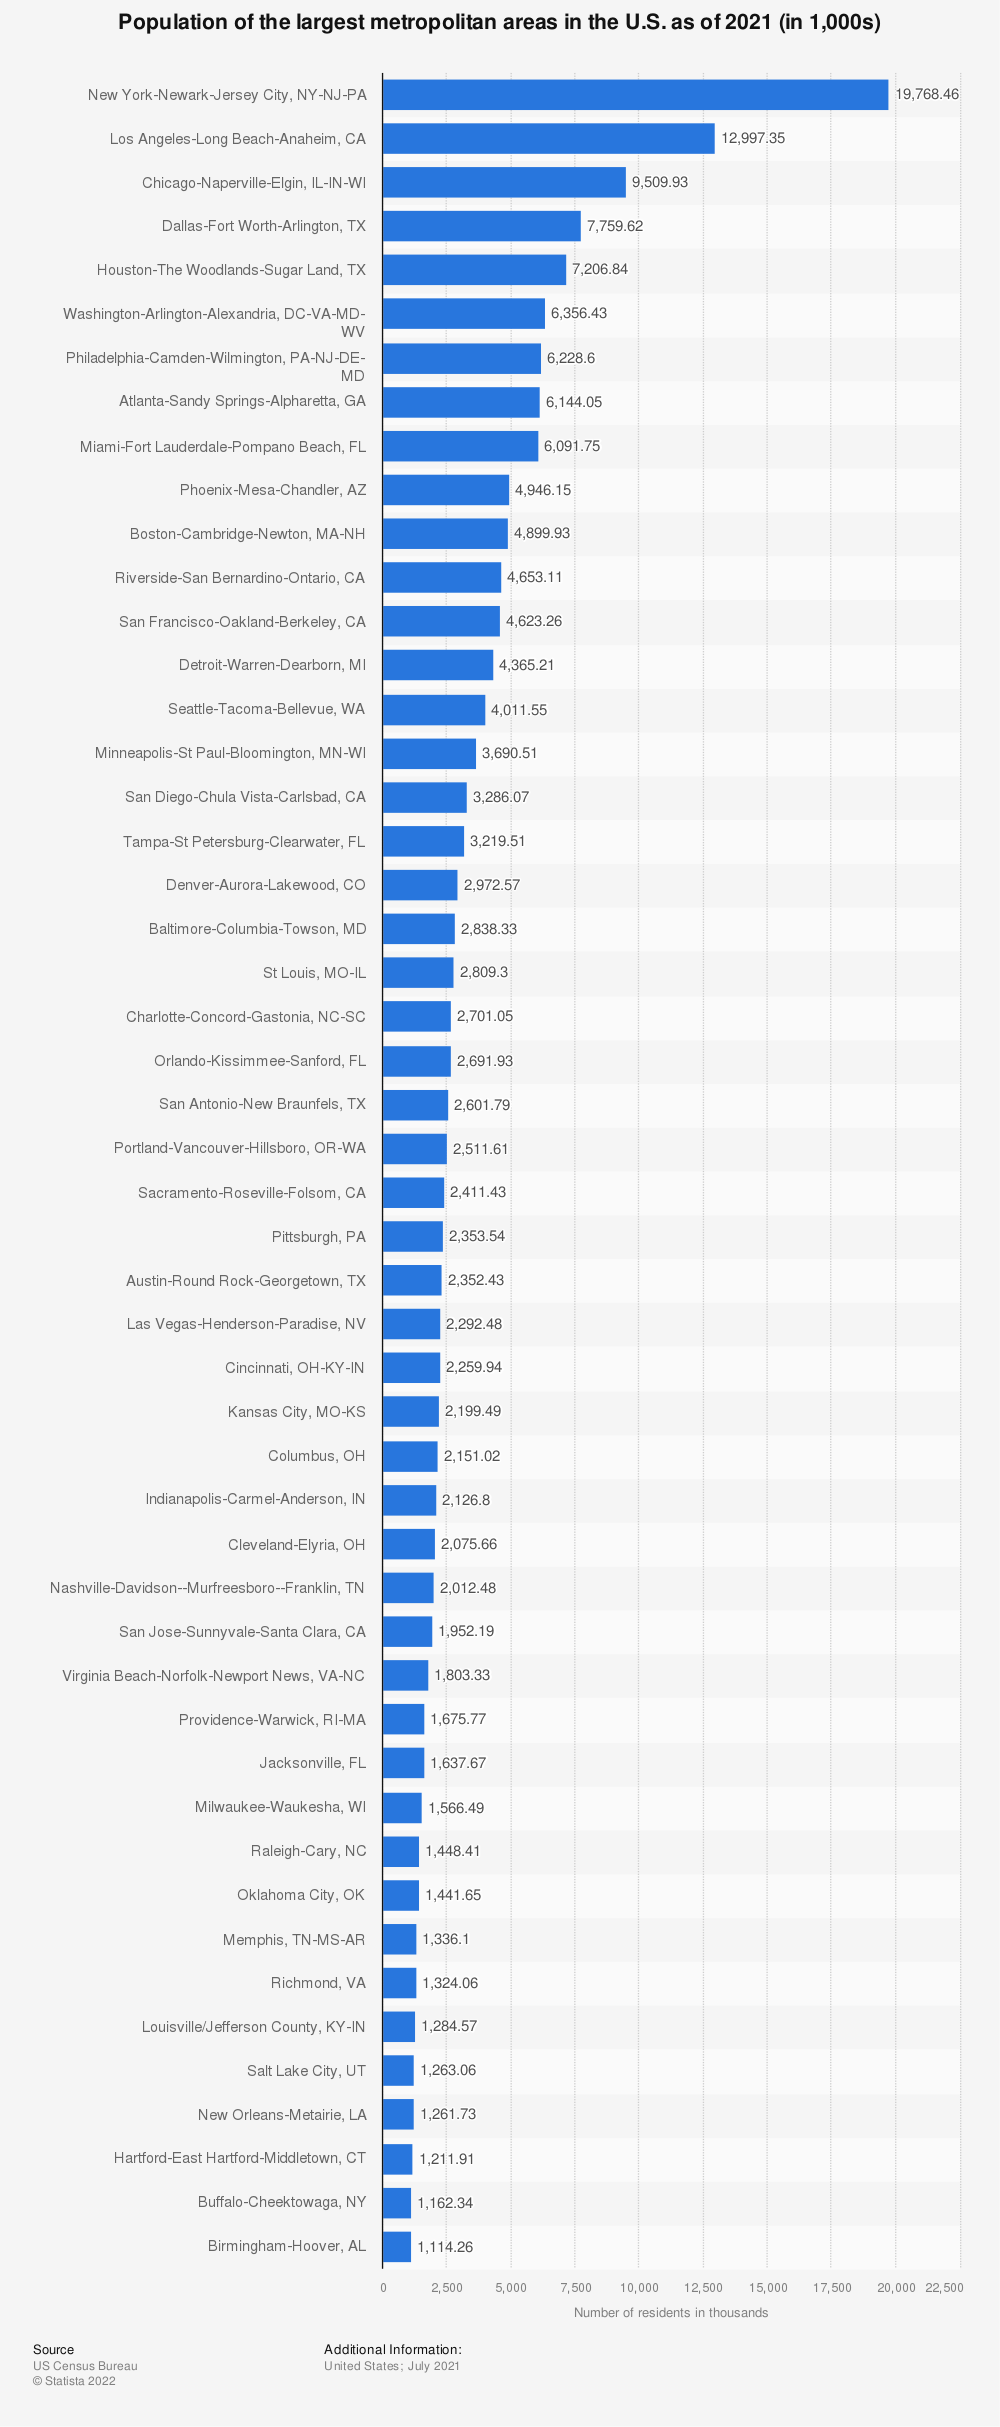 Statistic: Population of the largest metropolitan areas in the U.S. as of 2018 (in 1,000s) | Statista